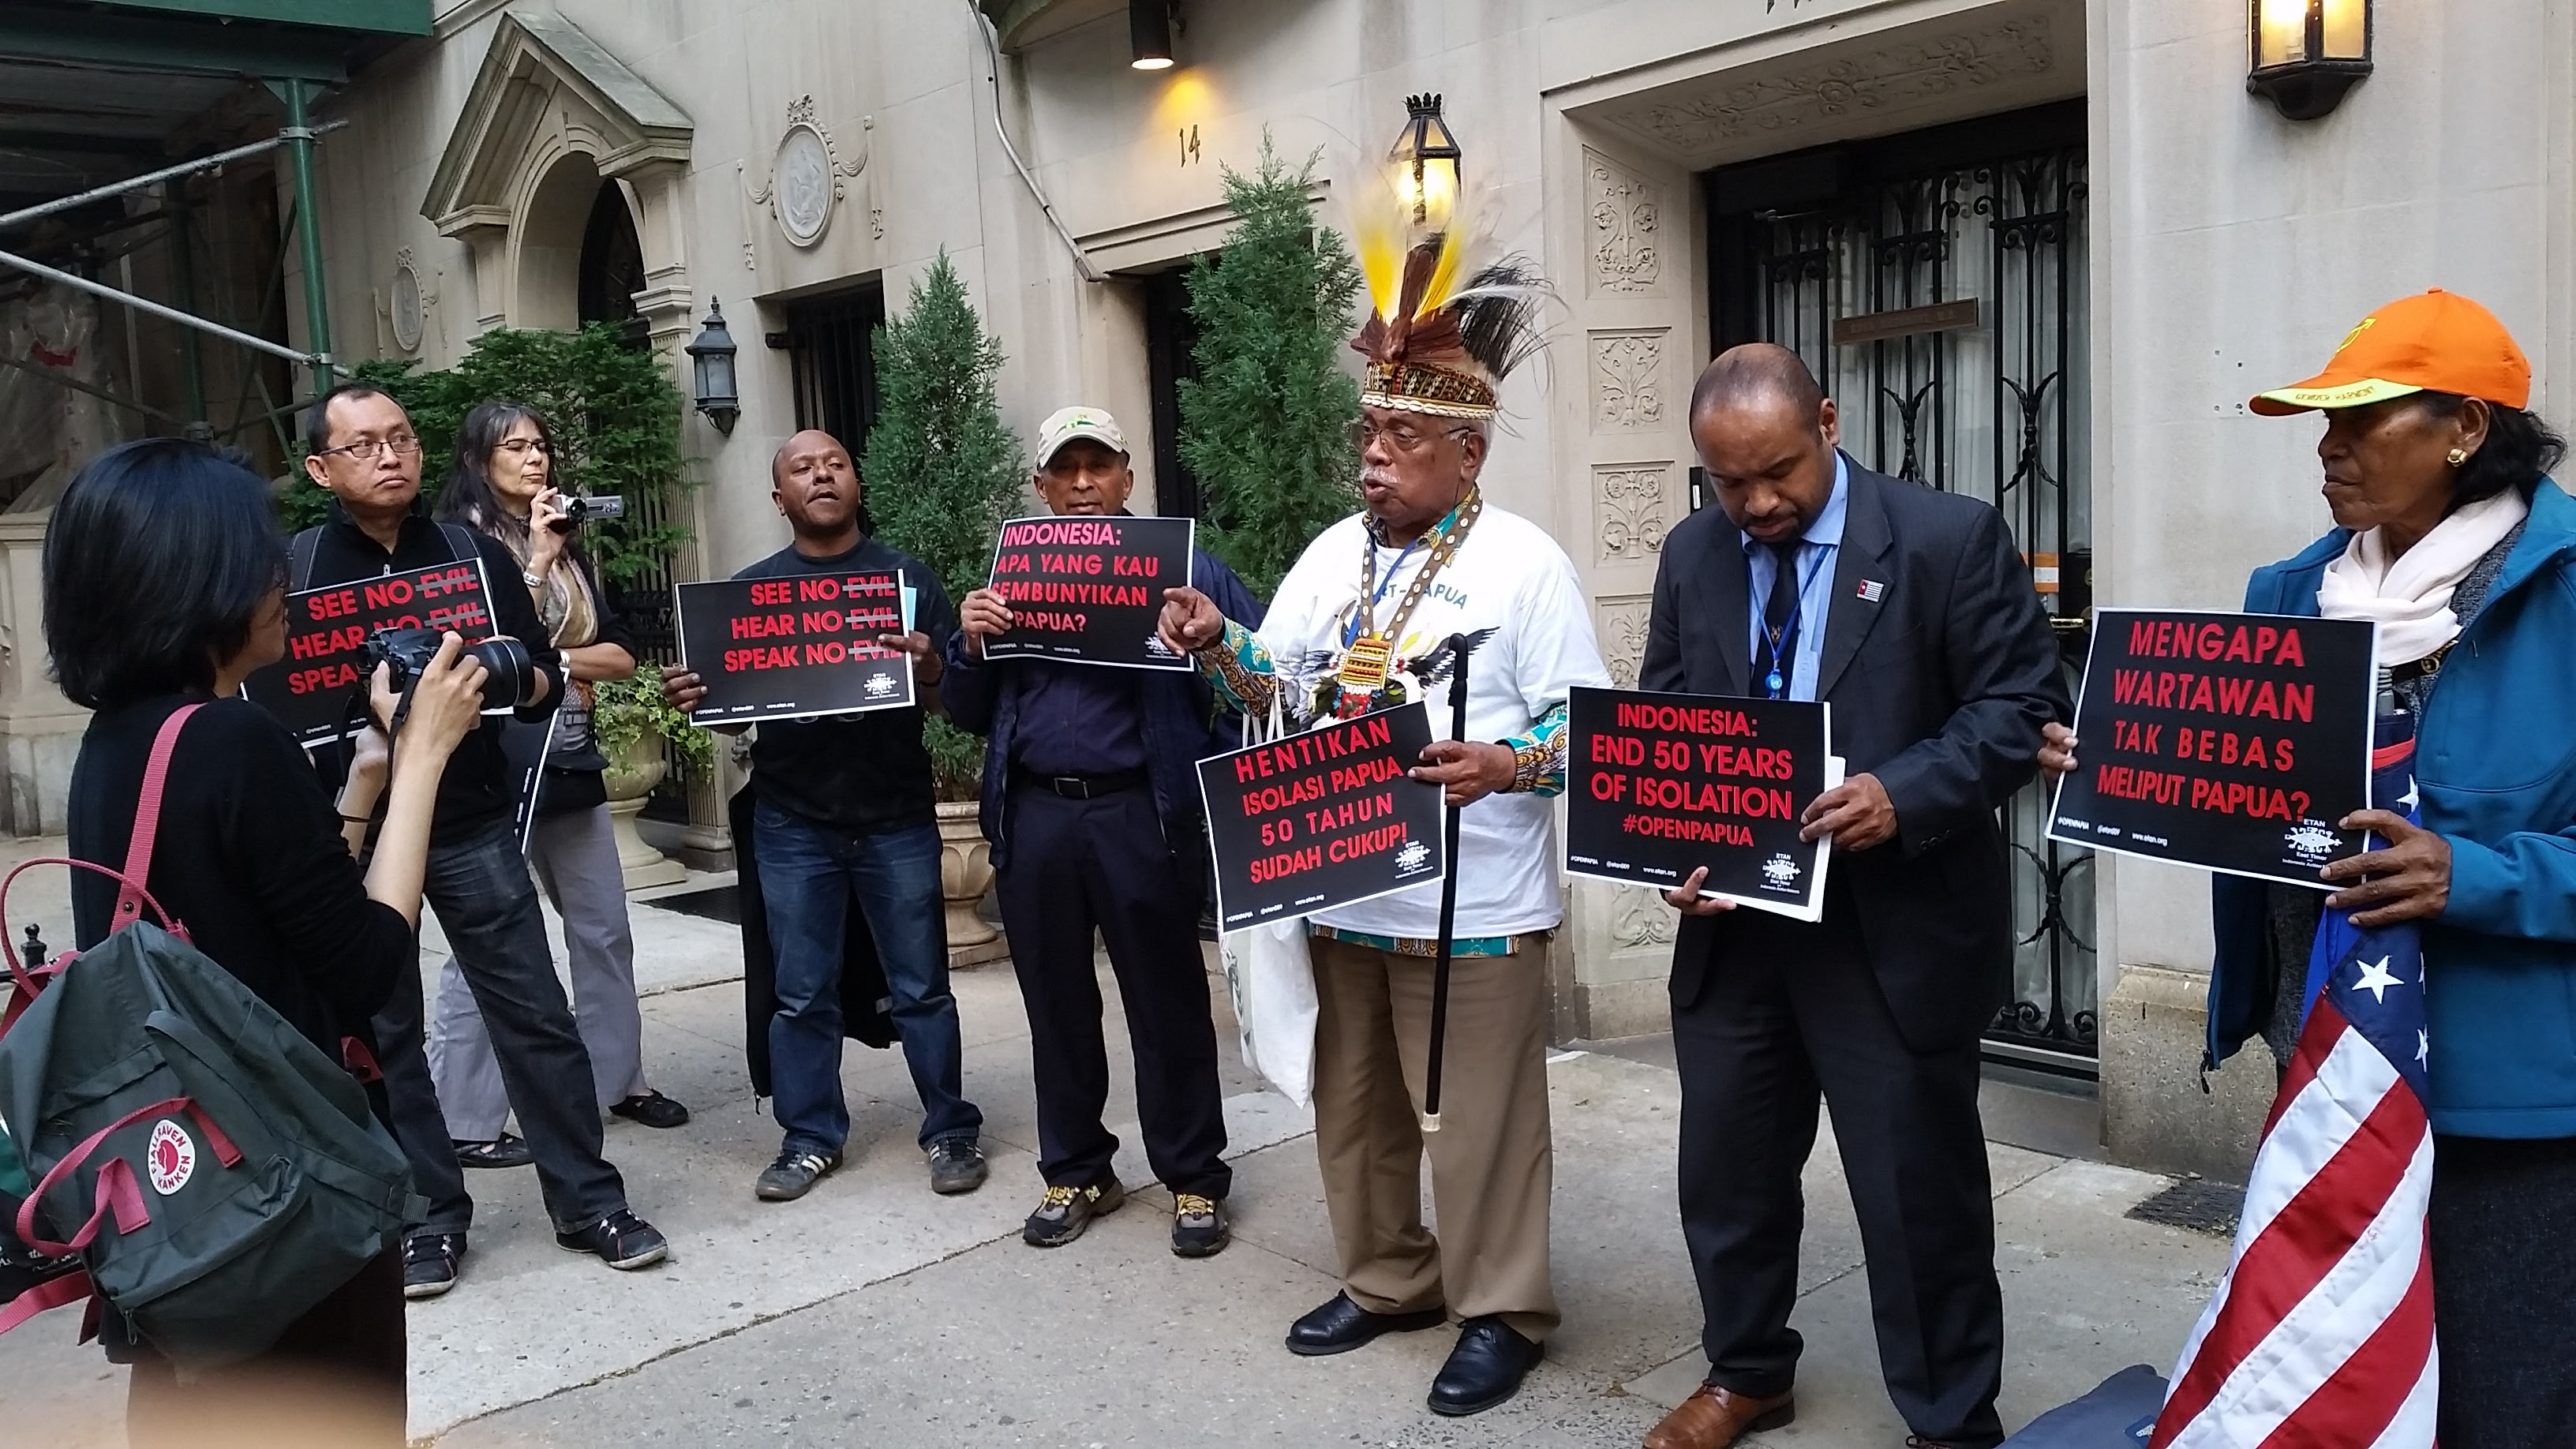 NYC #openpapua demonstration at Indonesian consulate